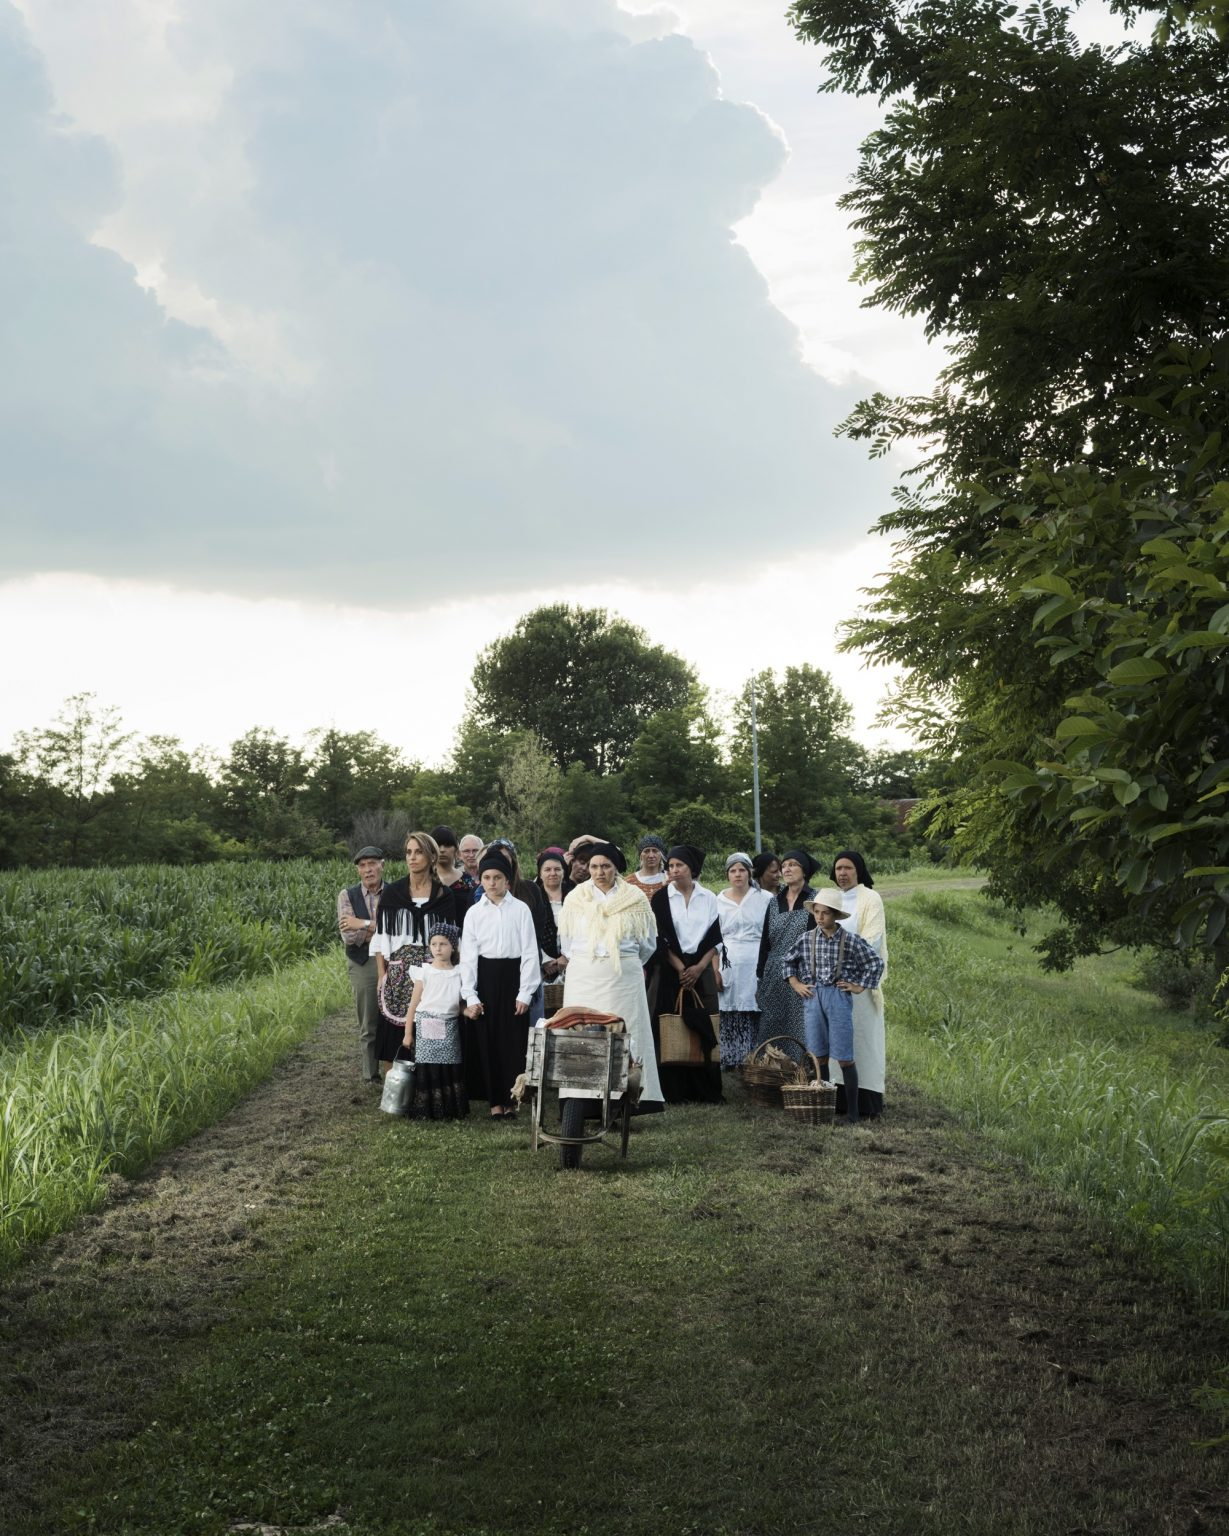 Breda di Piave (Treviso), Italy. First World War reenactment on the banks of the Piave river. Displaced persons re enactors.